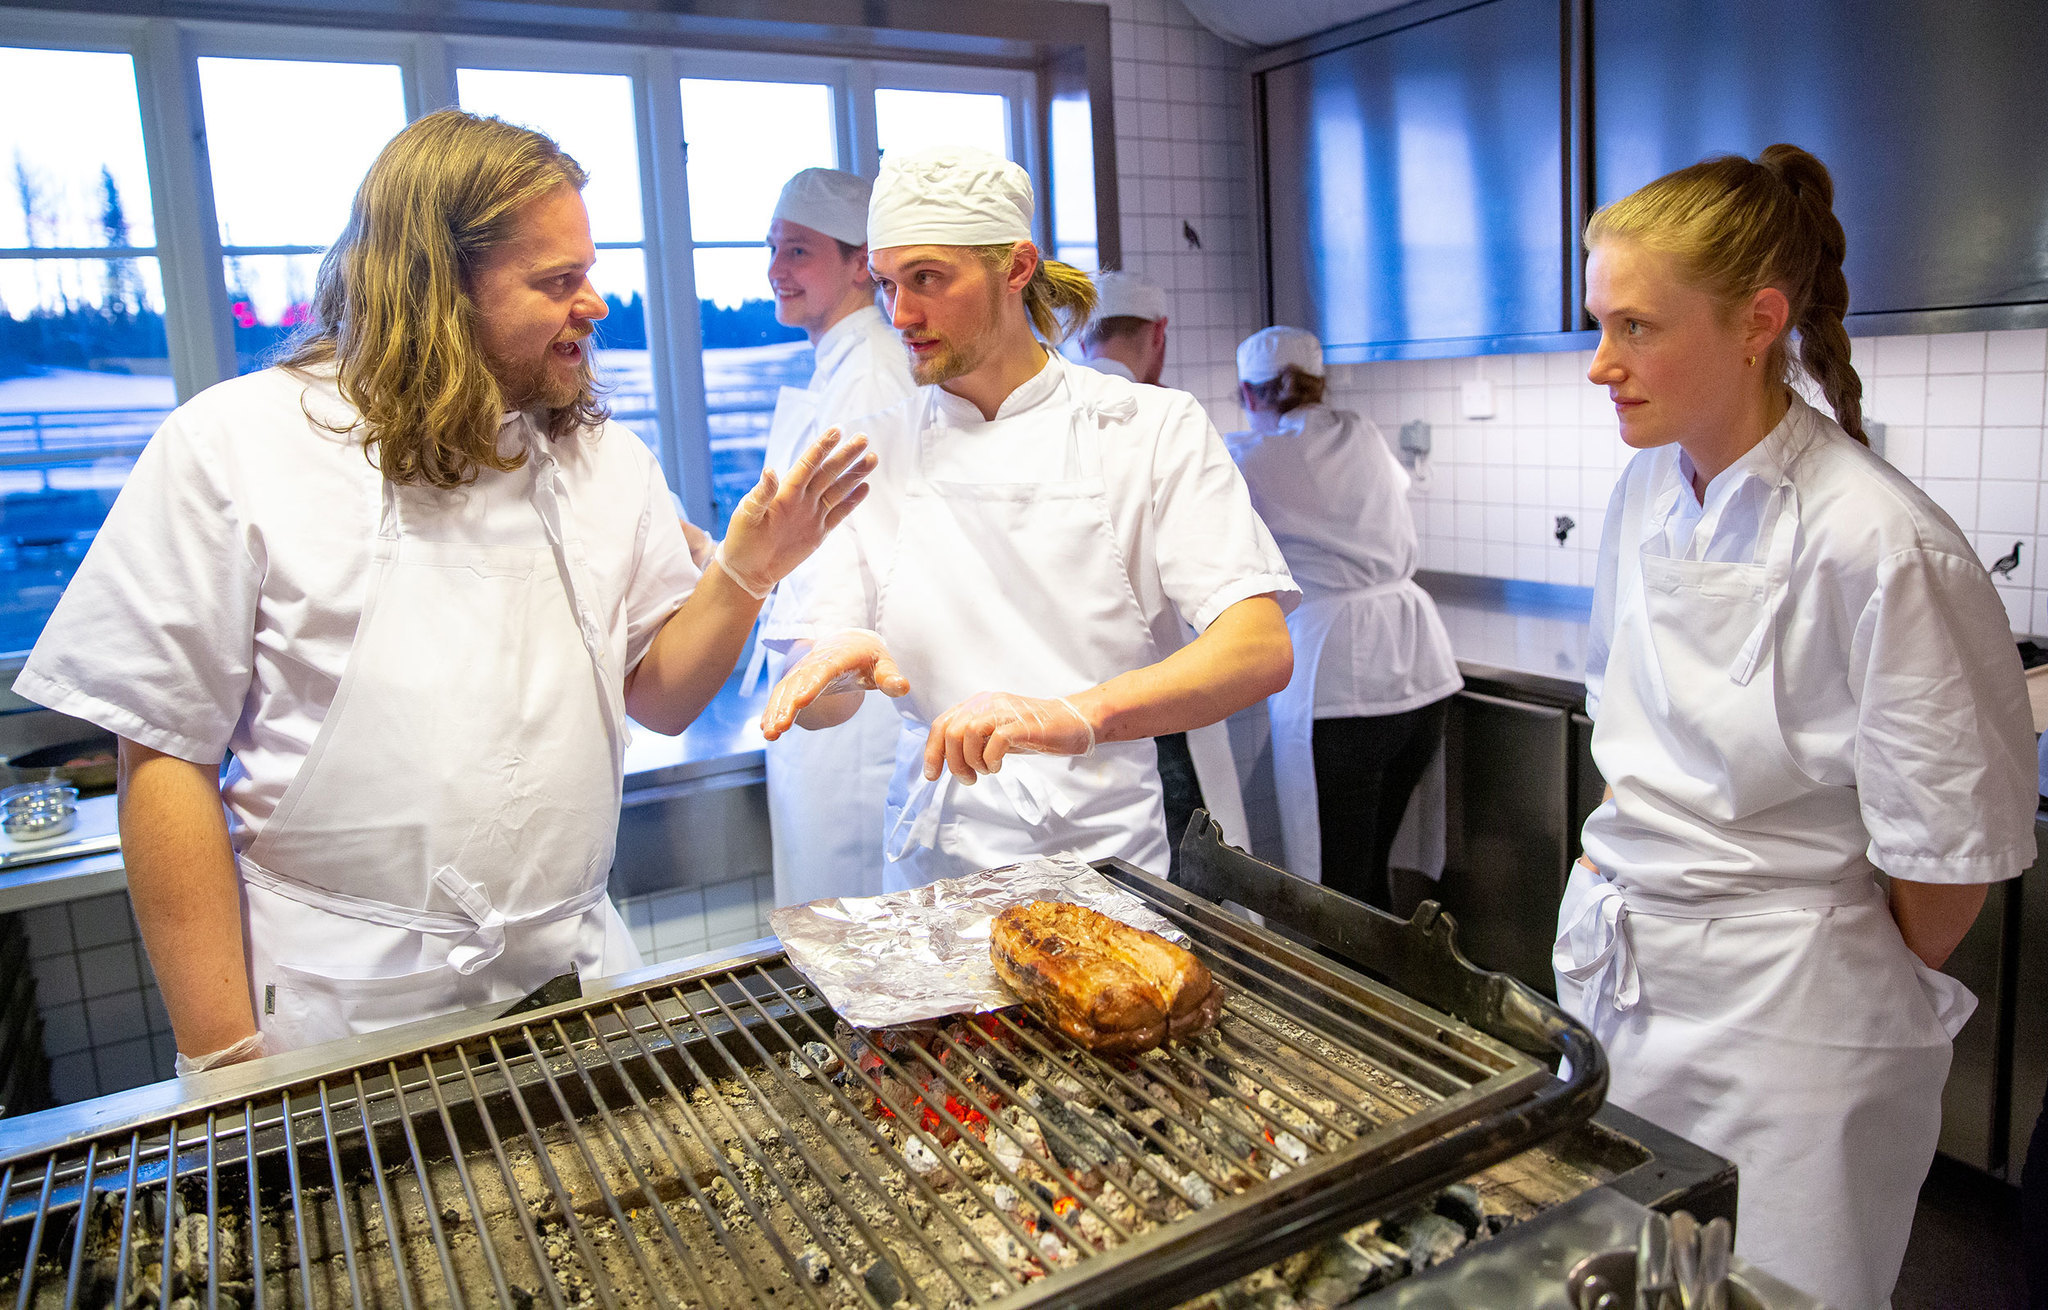 Head chef Magnus Nilsson talks with his staff while preparing a saddle of veal over an open fire at Faviken.